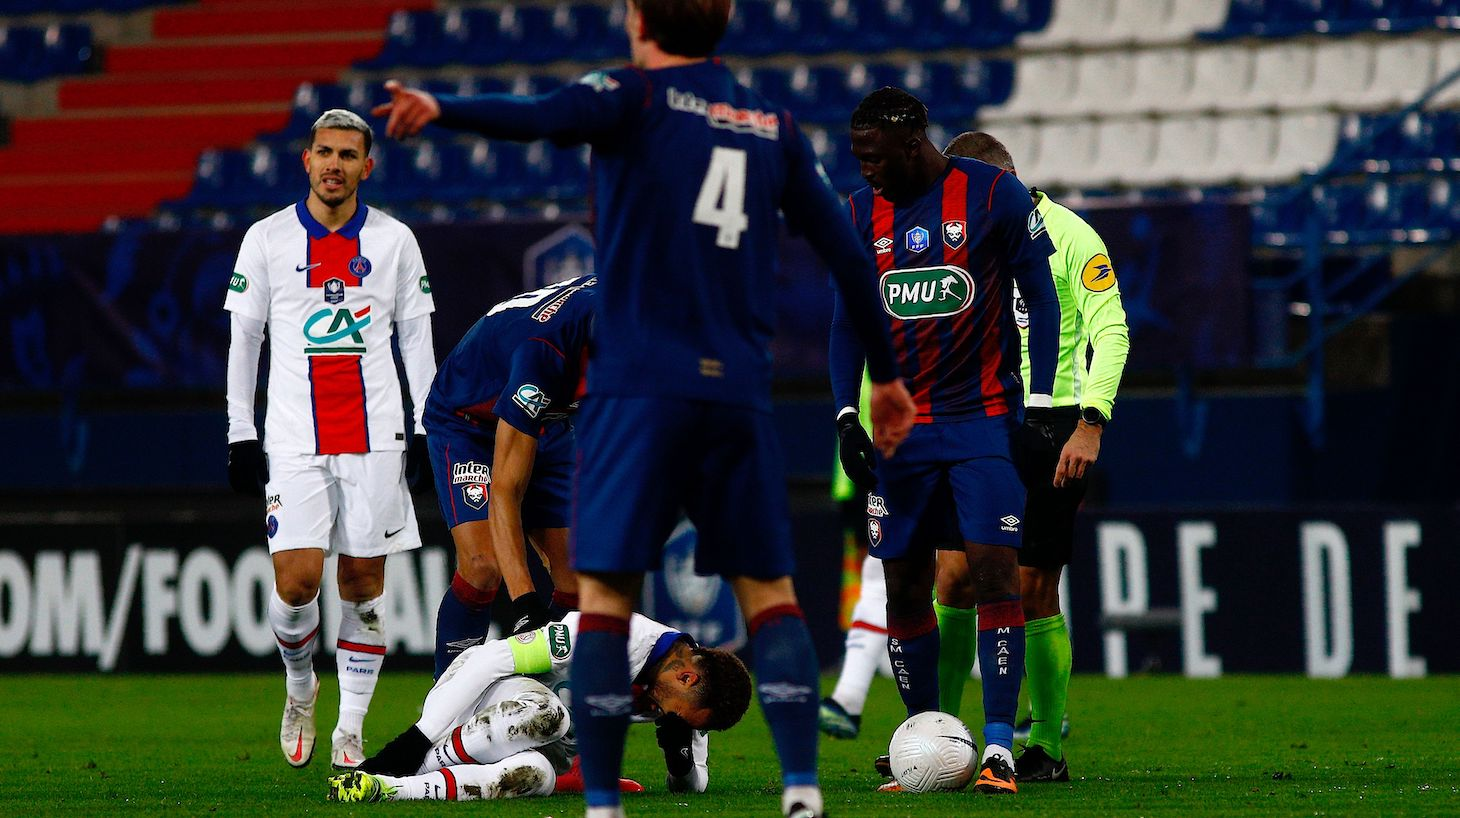 Paris Saint-Germain's Brazilian forward Neymar (3rd-L) reacts on the lawn during the French Cup round-of-64 football match between Stade Malherbe Caen and Paris Saint-Germain at the Michel-d'Ornano Stadium in Caen, northwestern France on February 10, 2021.